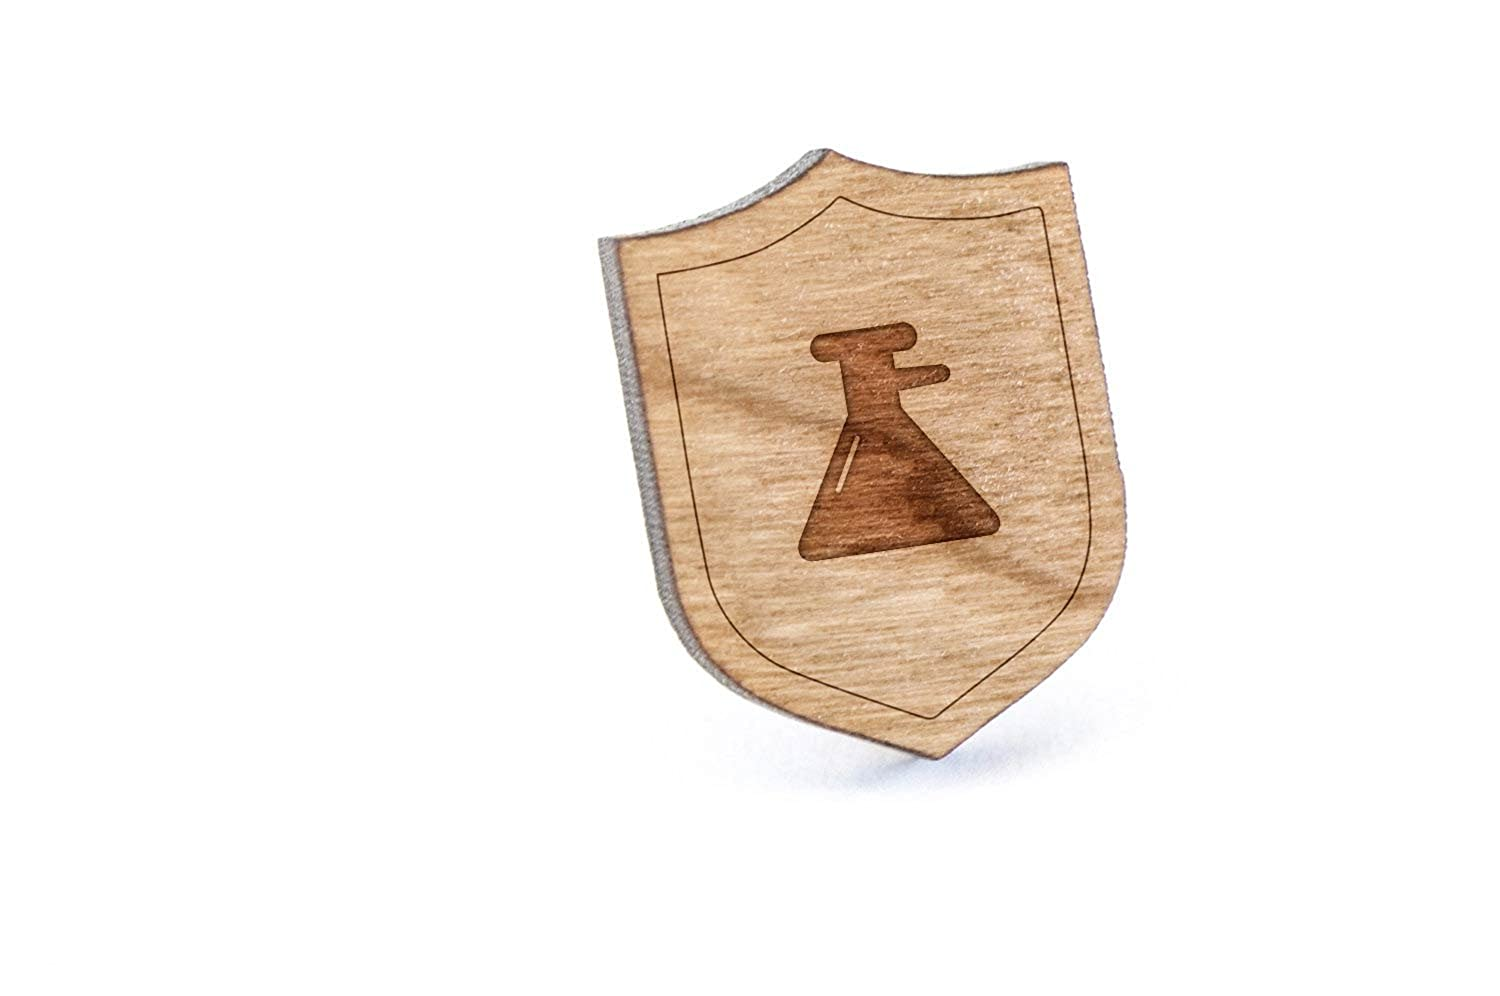 Filtering Flask Lapel Pin, Wooden Pin And Tie Tack   Rustic And Minimalistic Groomsmen Gifts And Wedding Accessories